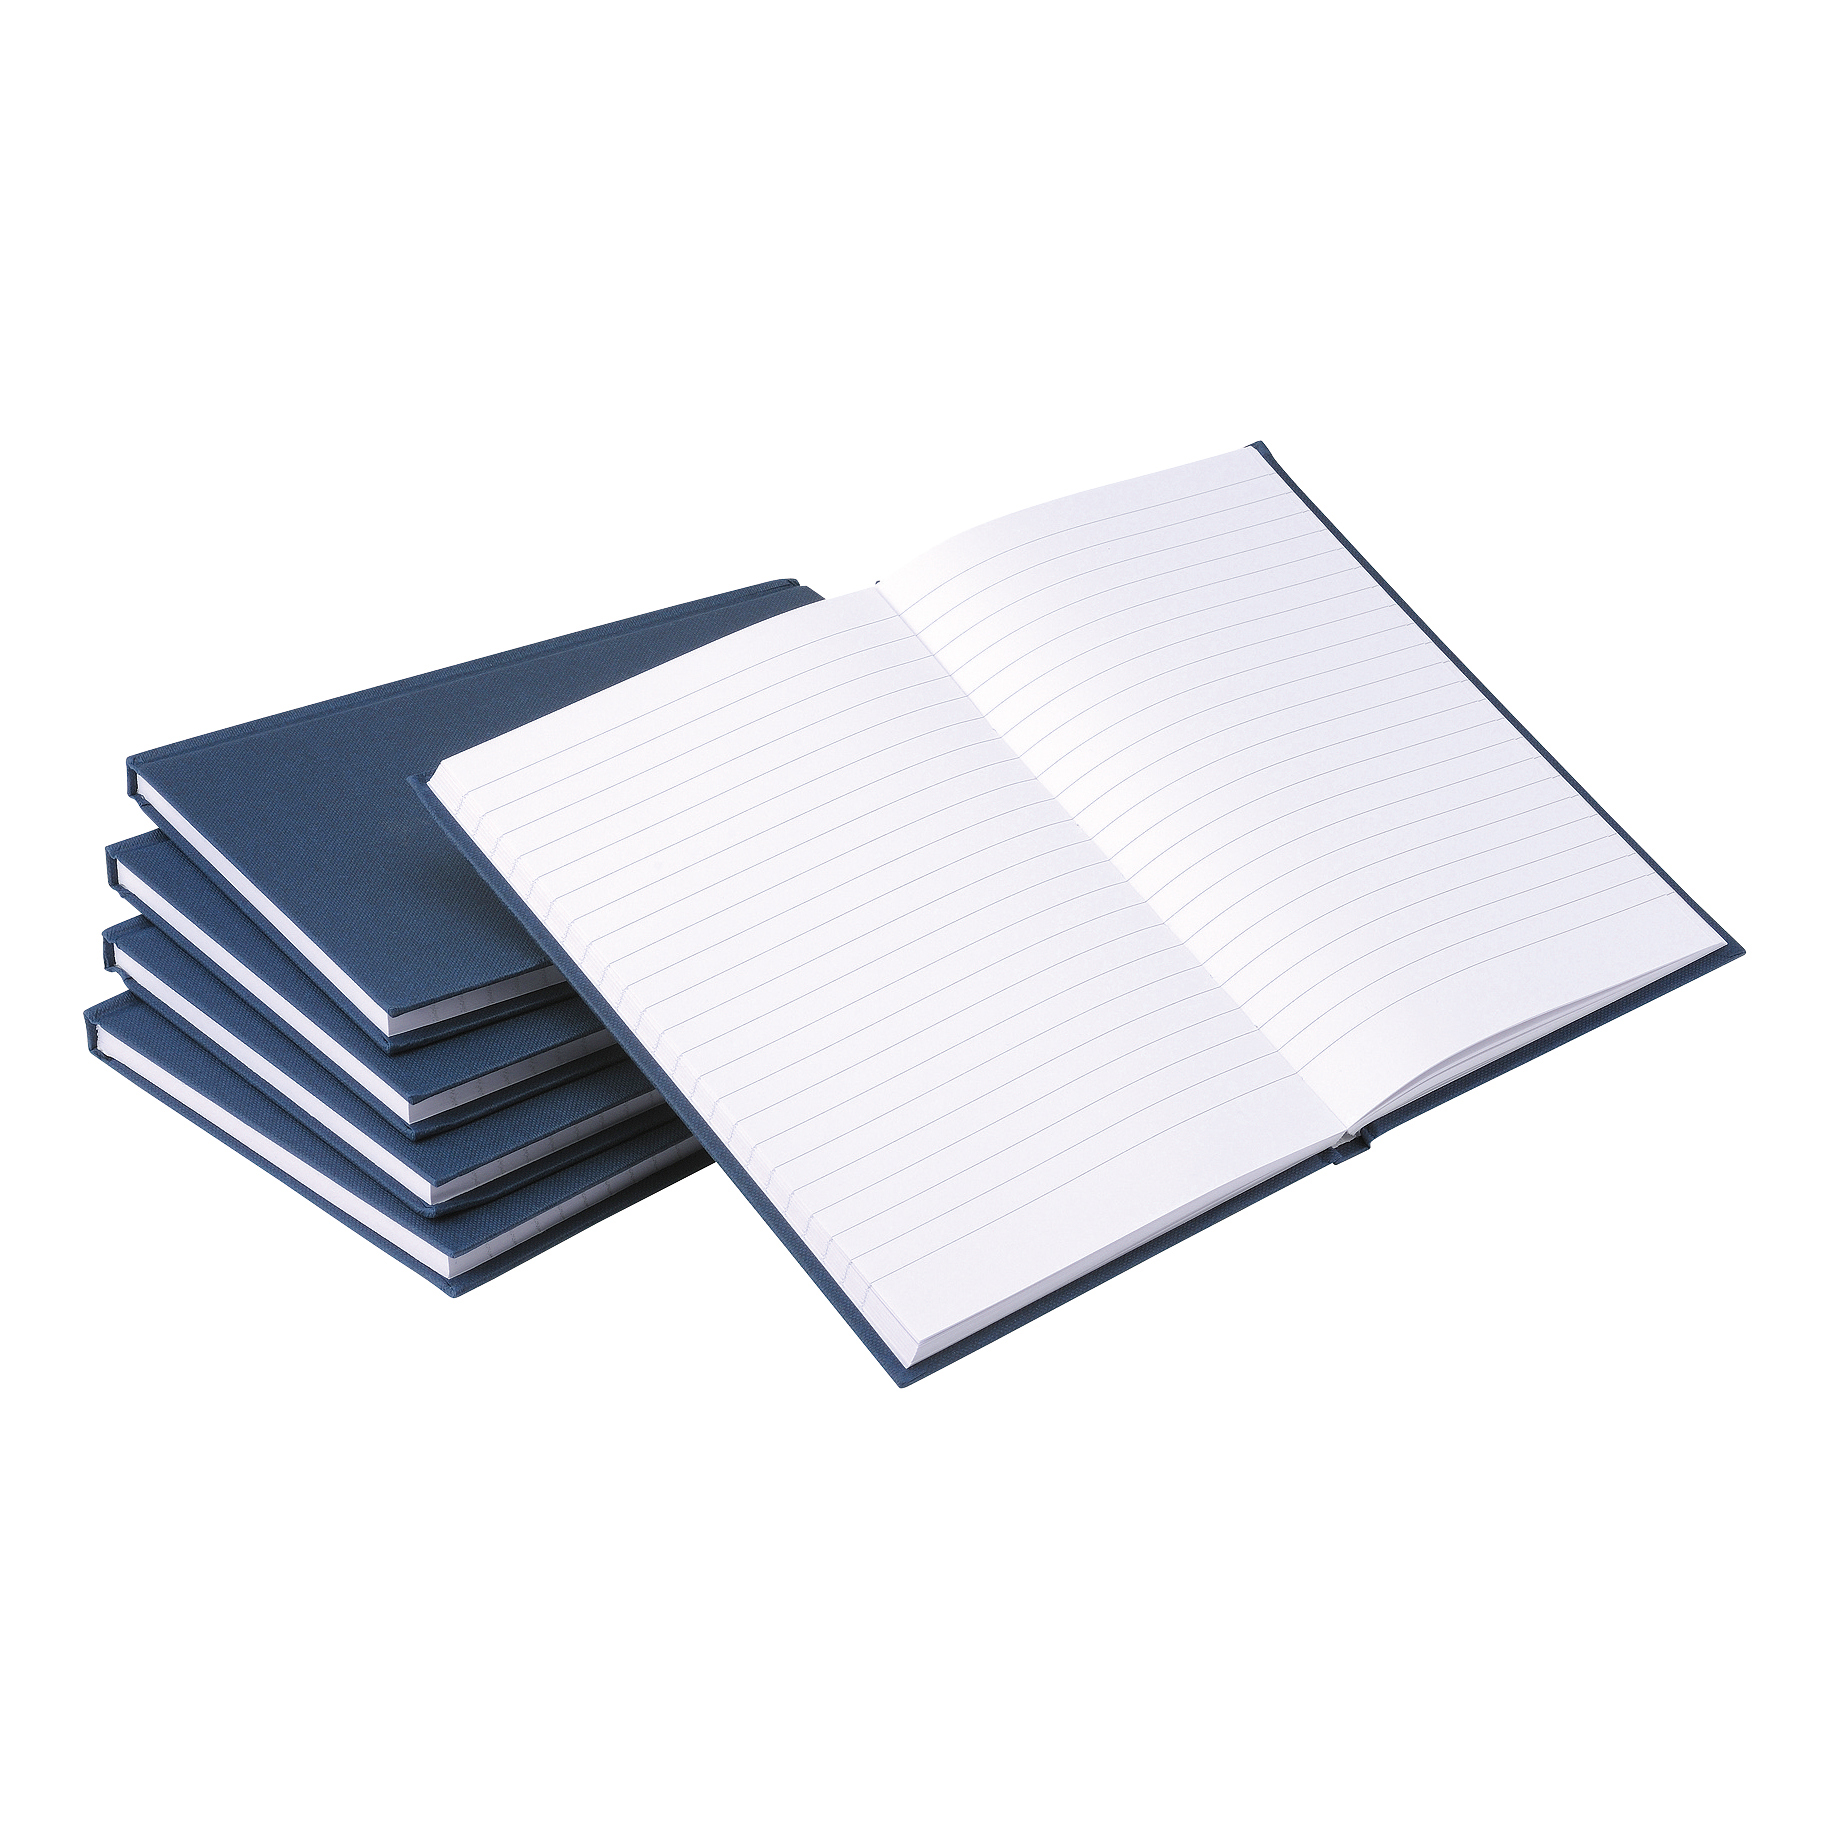 5 Star Value Casebound Notebook 70gsm Ruled 192pp A5 [Pack 5]